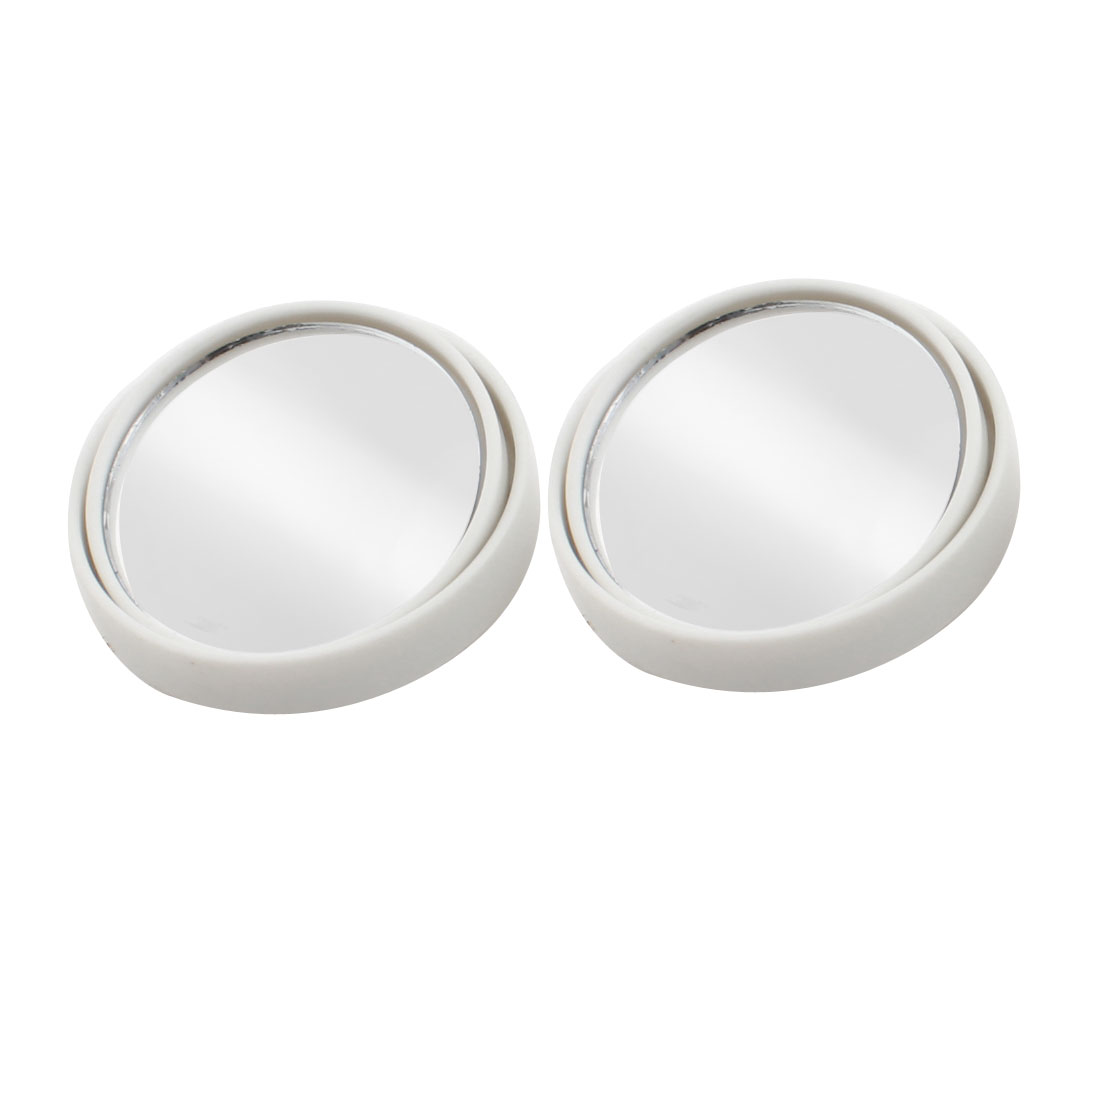 "Car White Wide Angle Round Convex Rearview Blind Spot Mirror 2"" 2pcs"